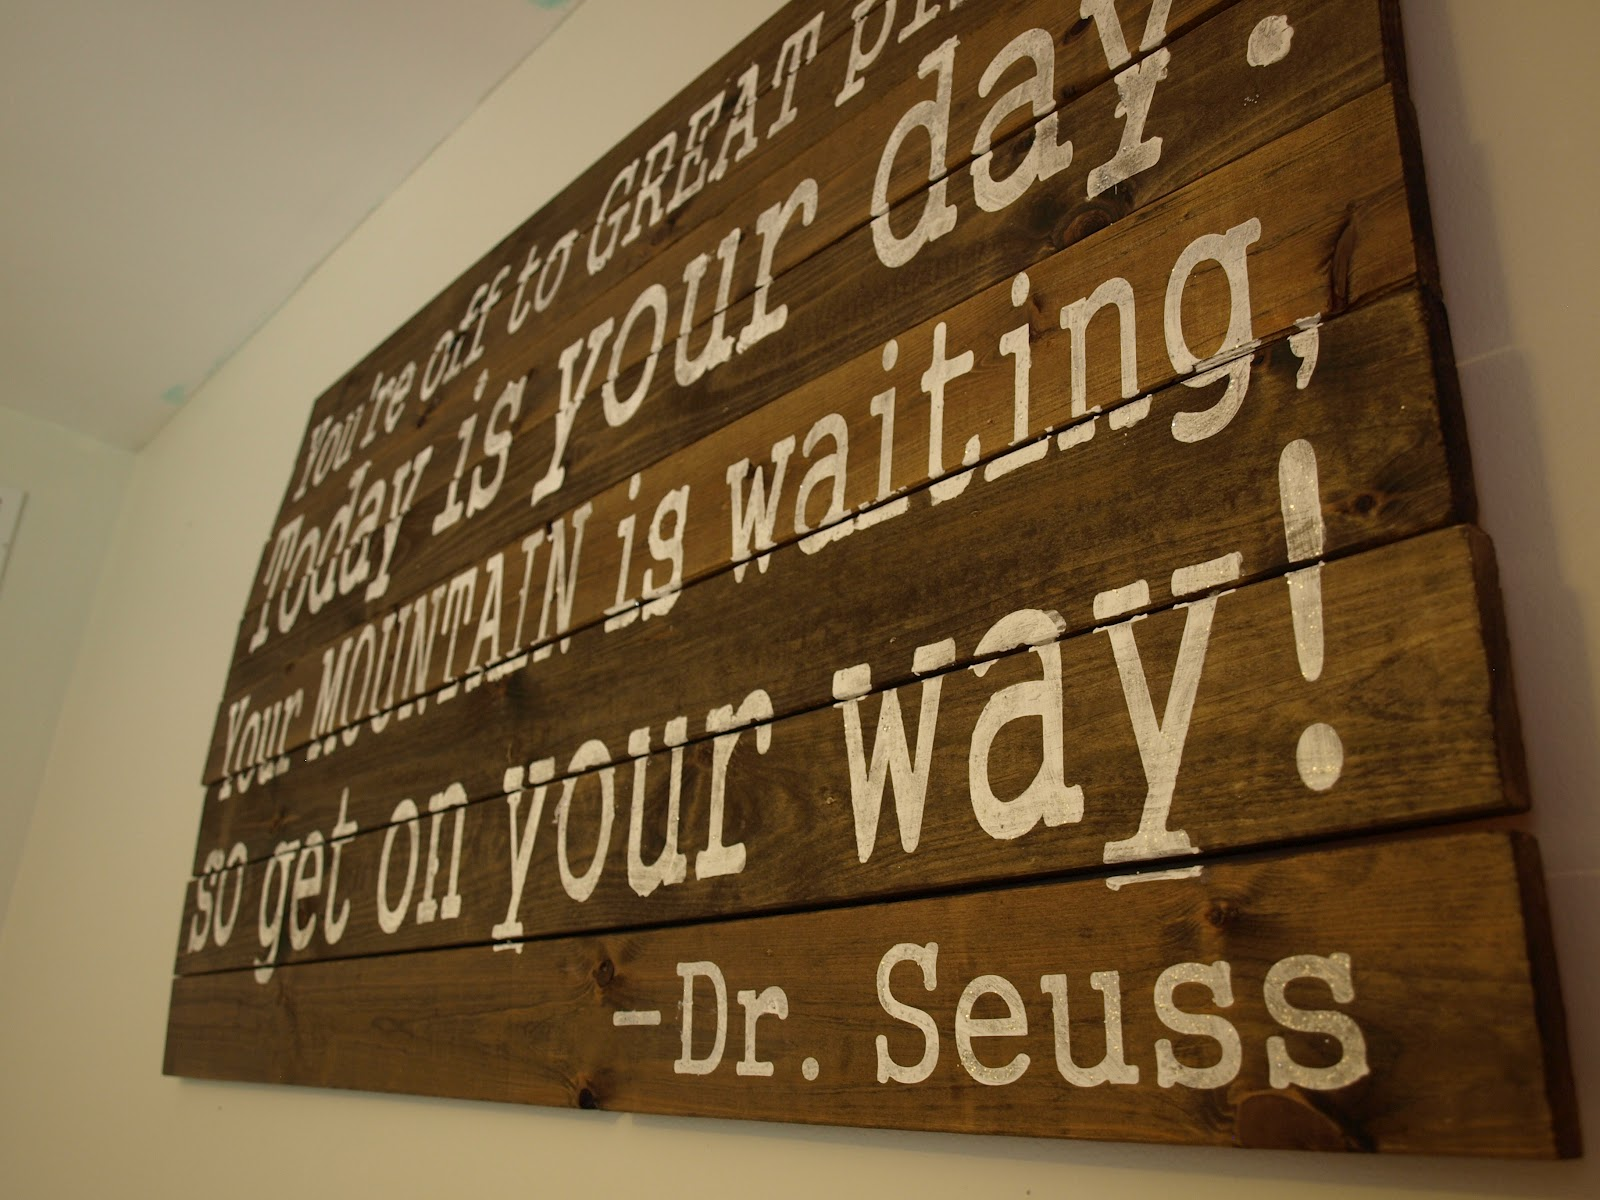 New Home Quotes Oh Susannah® Drseuss Quote On Wooden Wall Hanging